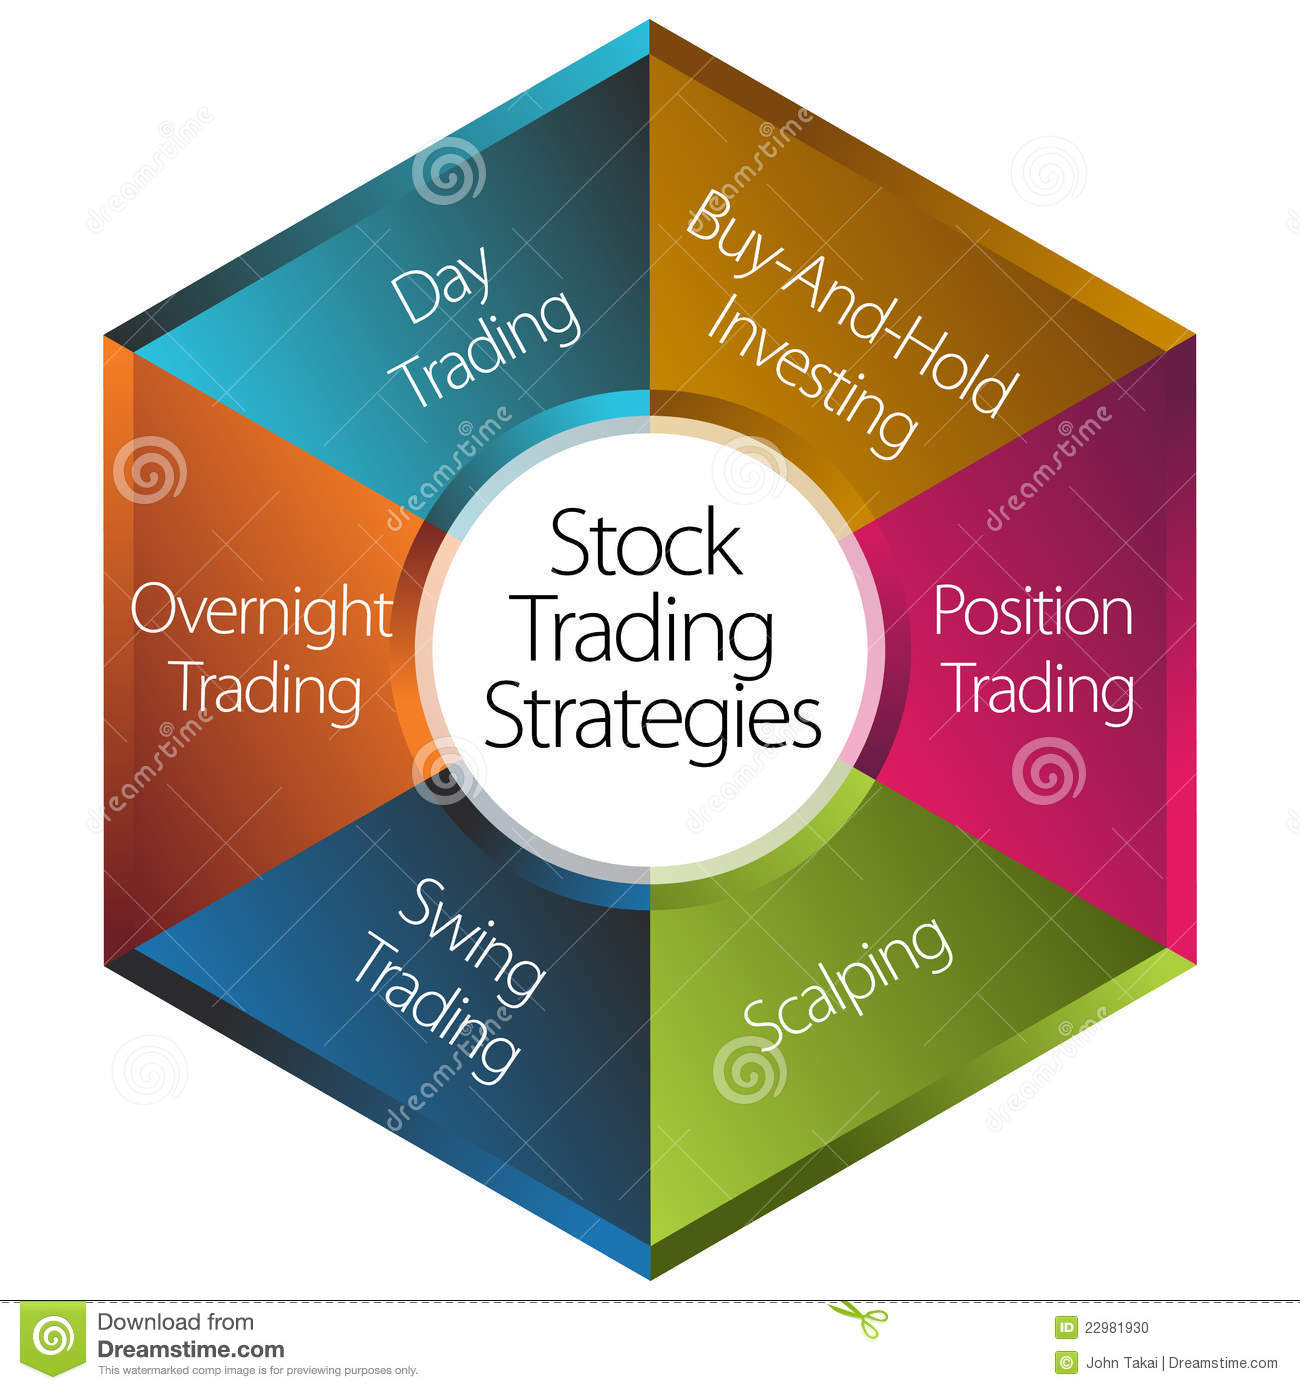 Stock market trading strategies pdf